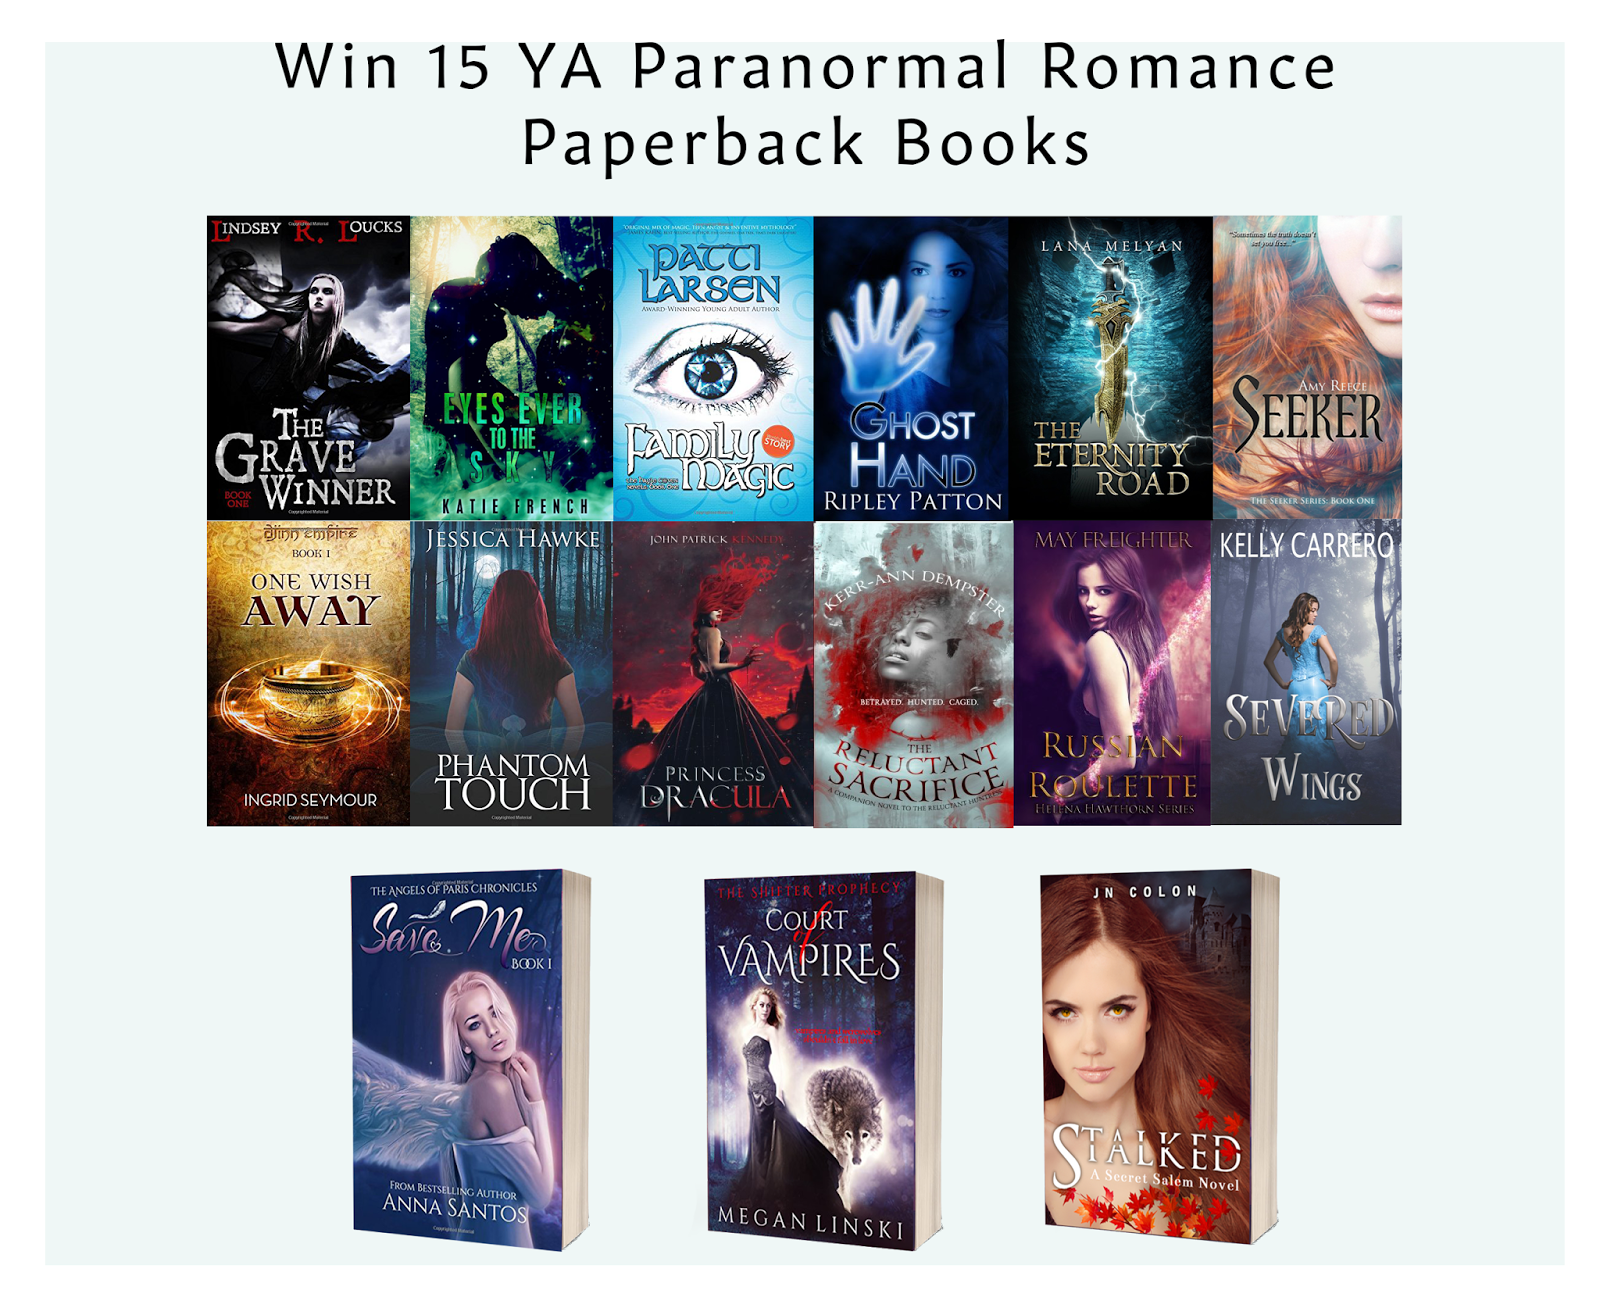 Want To Win Young Adult Paranormal Romance Books?